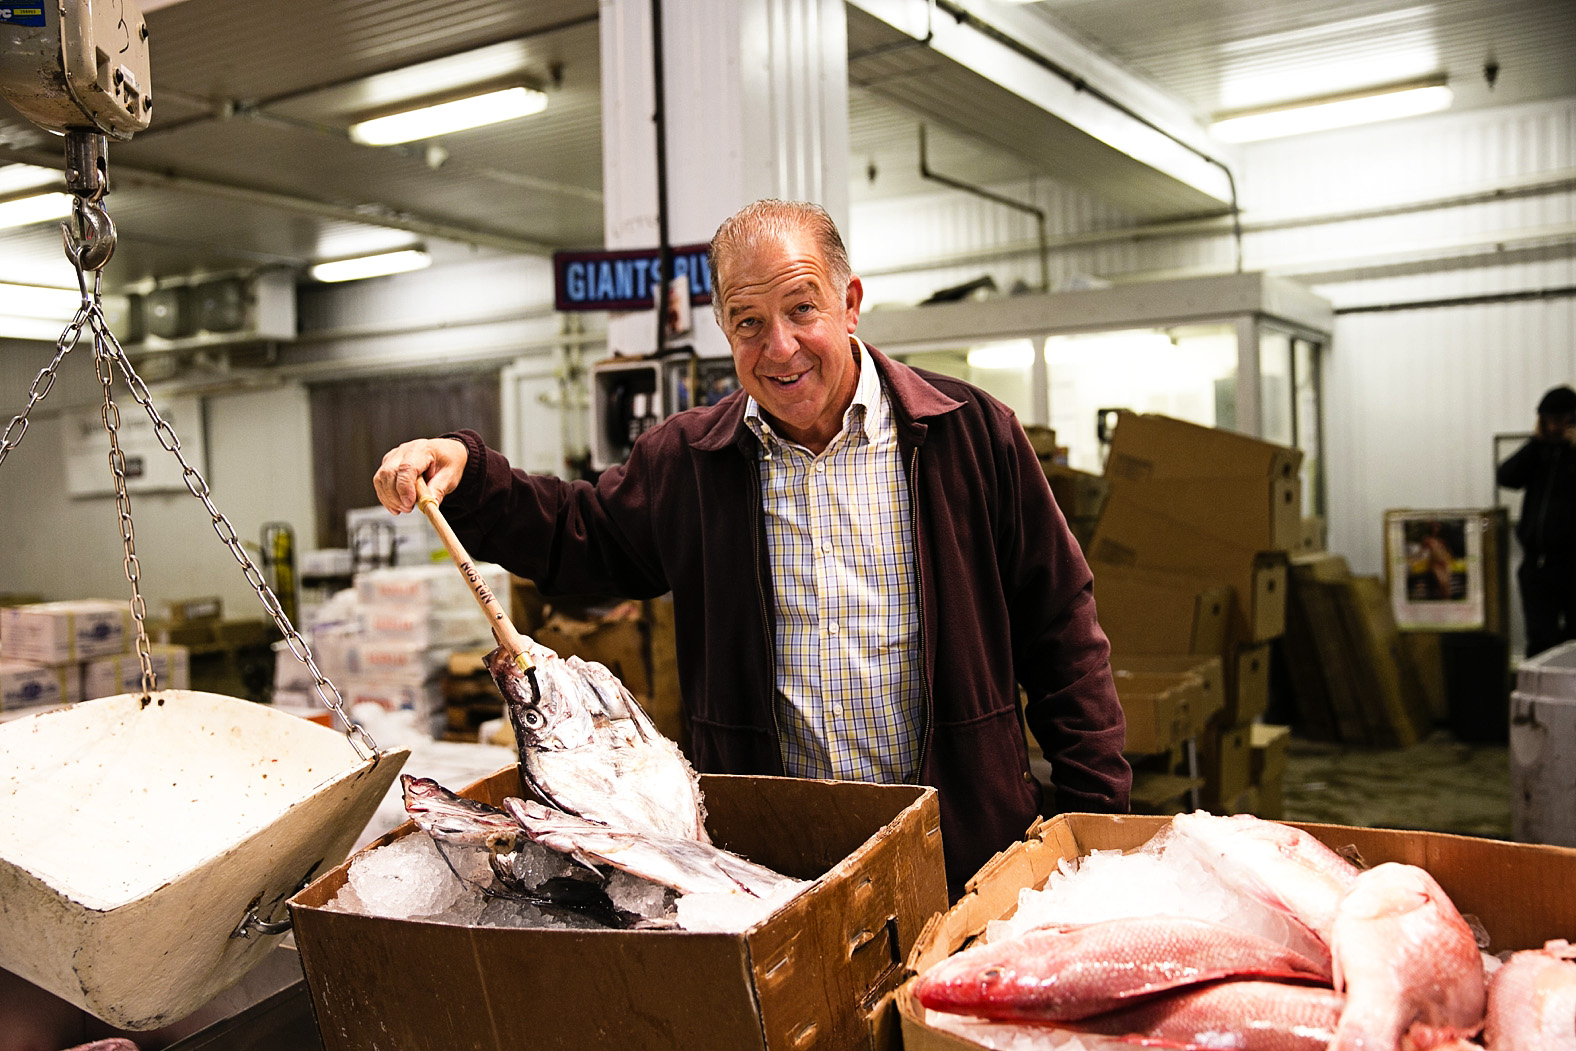 Joe Gurrera, owner Citarella, at The New Fulton Fish Market for Serendipity Magazine